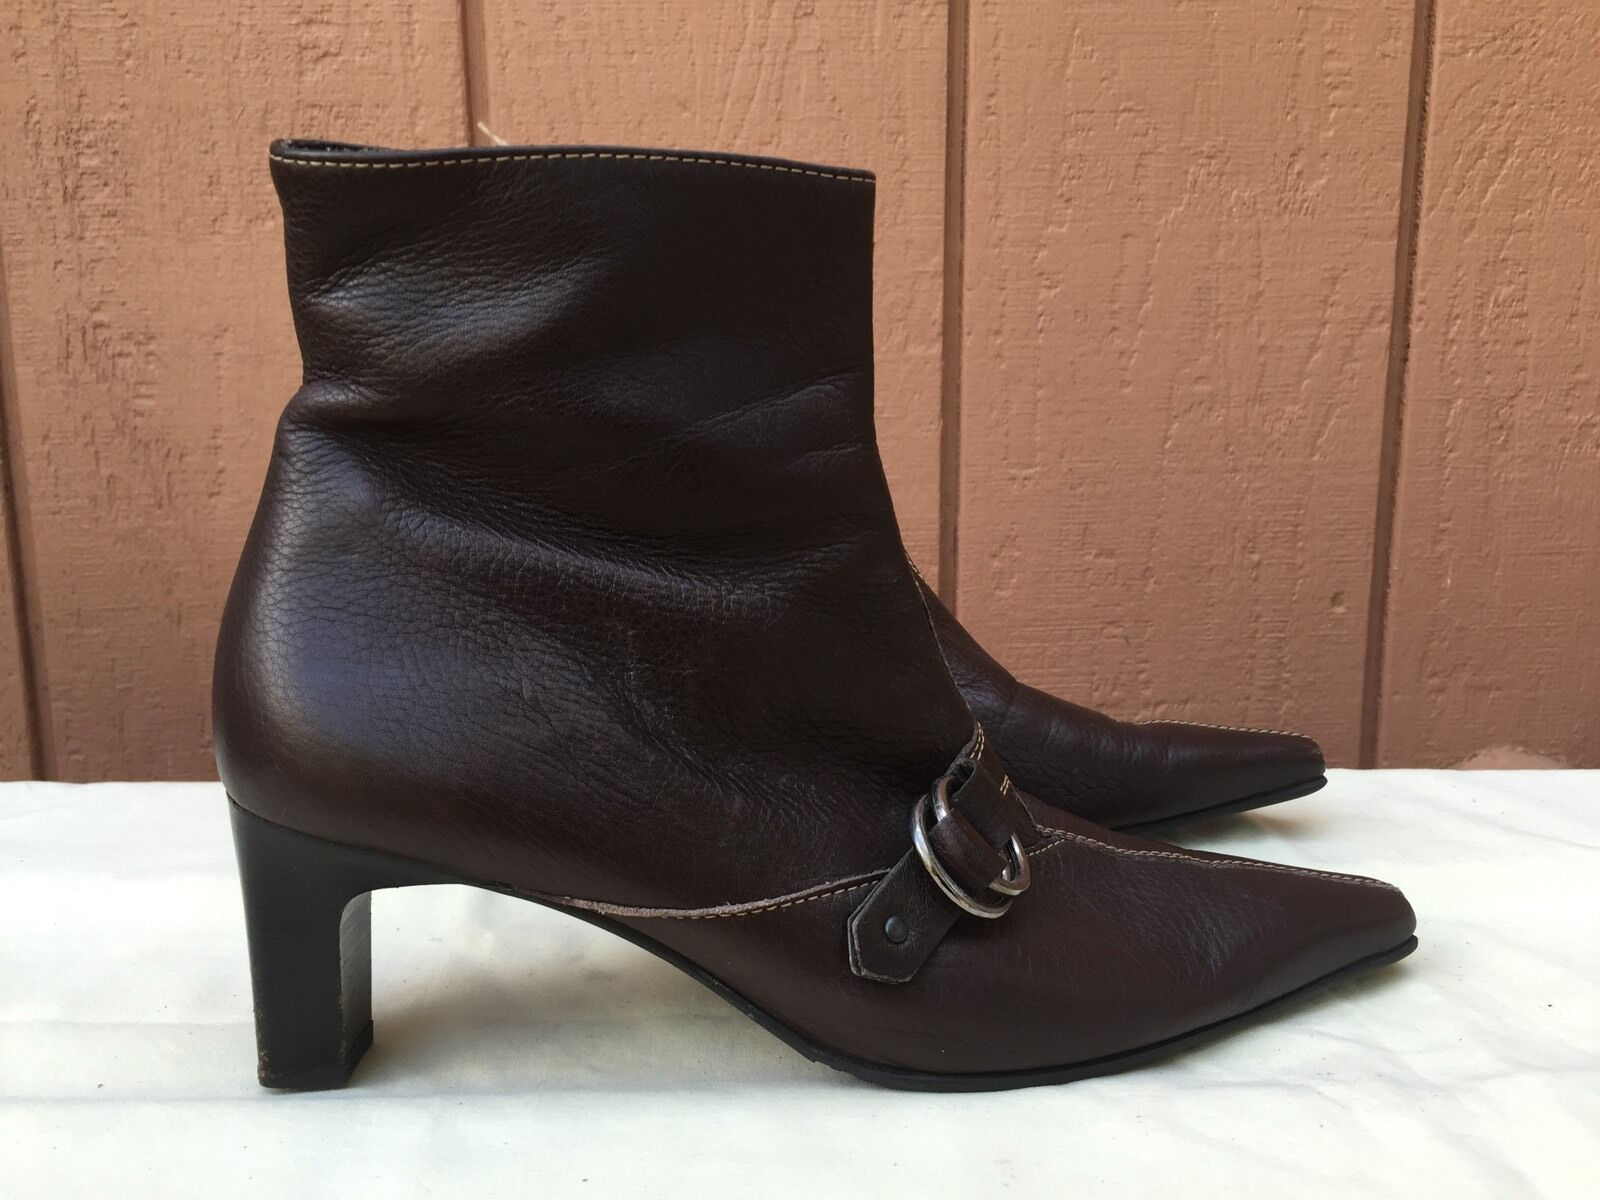 EUC PAUL GREEN Women's Brown Leather Handmade Ankle Boot US Sz 5